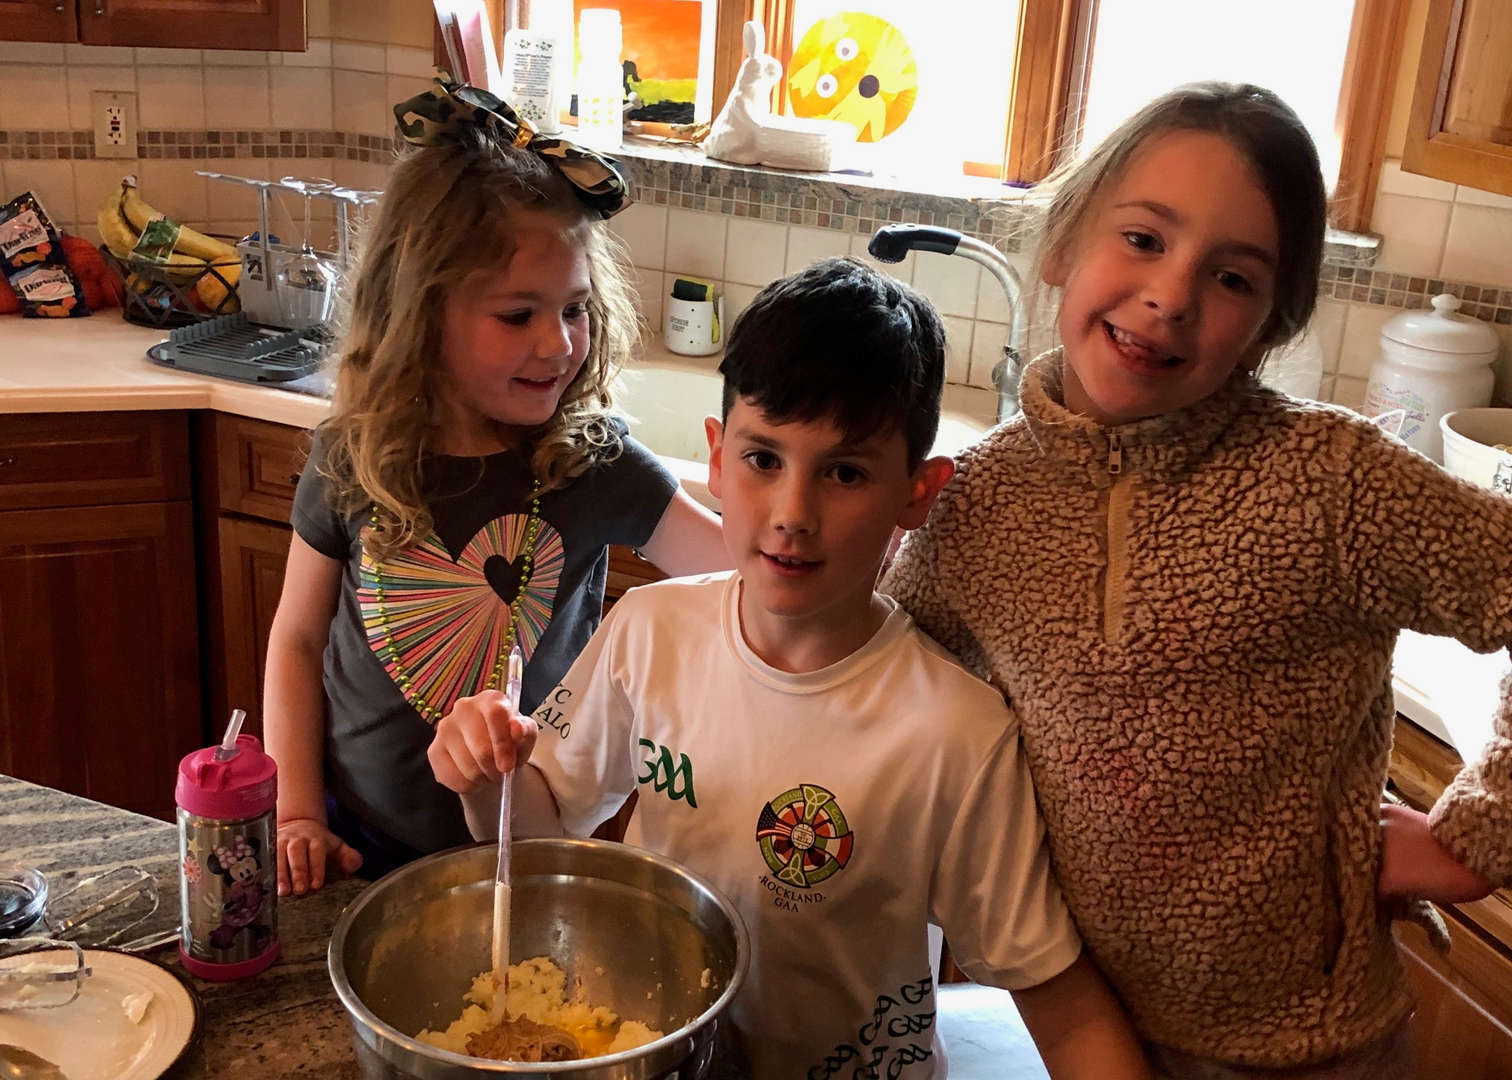 Students cooking at home